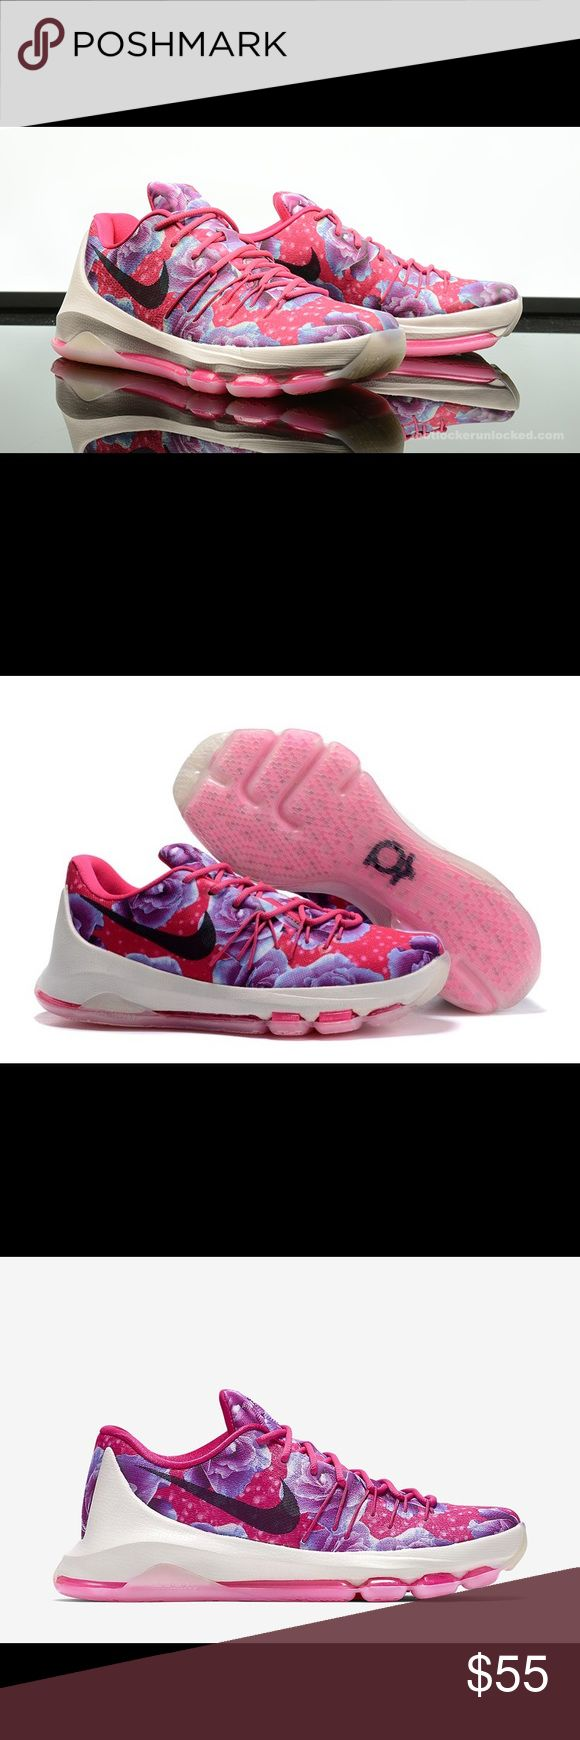 New KD Kevin Durant 8 Premium Floral Aunt Pearl New KD (Kevin Durant) 8 Premium Aunt Pearl. Pink and purple floral shoe. Size 6 Youth, equivalent to size 7.5 Women's. New in box without lid. Nike Shoes Sneakers